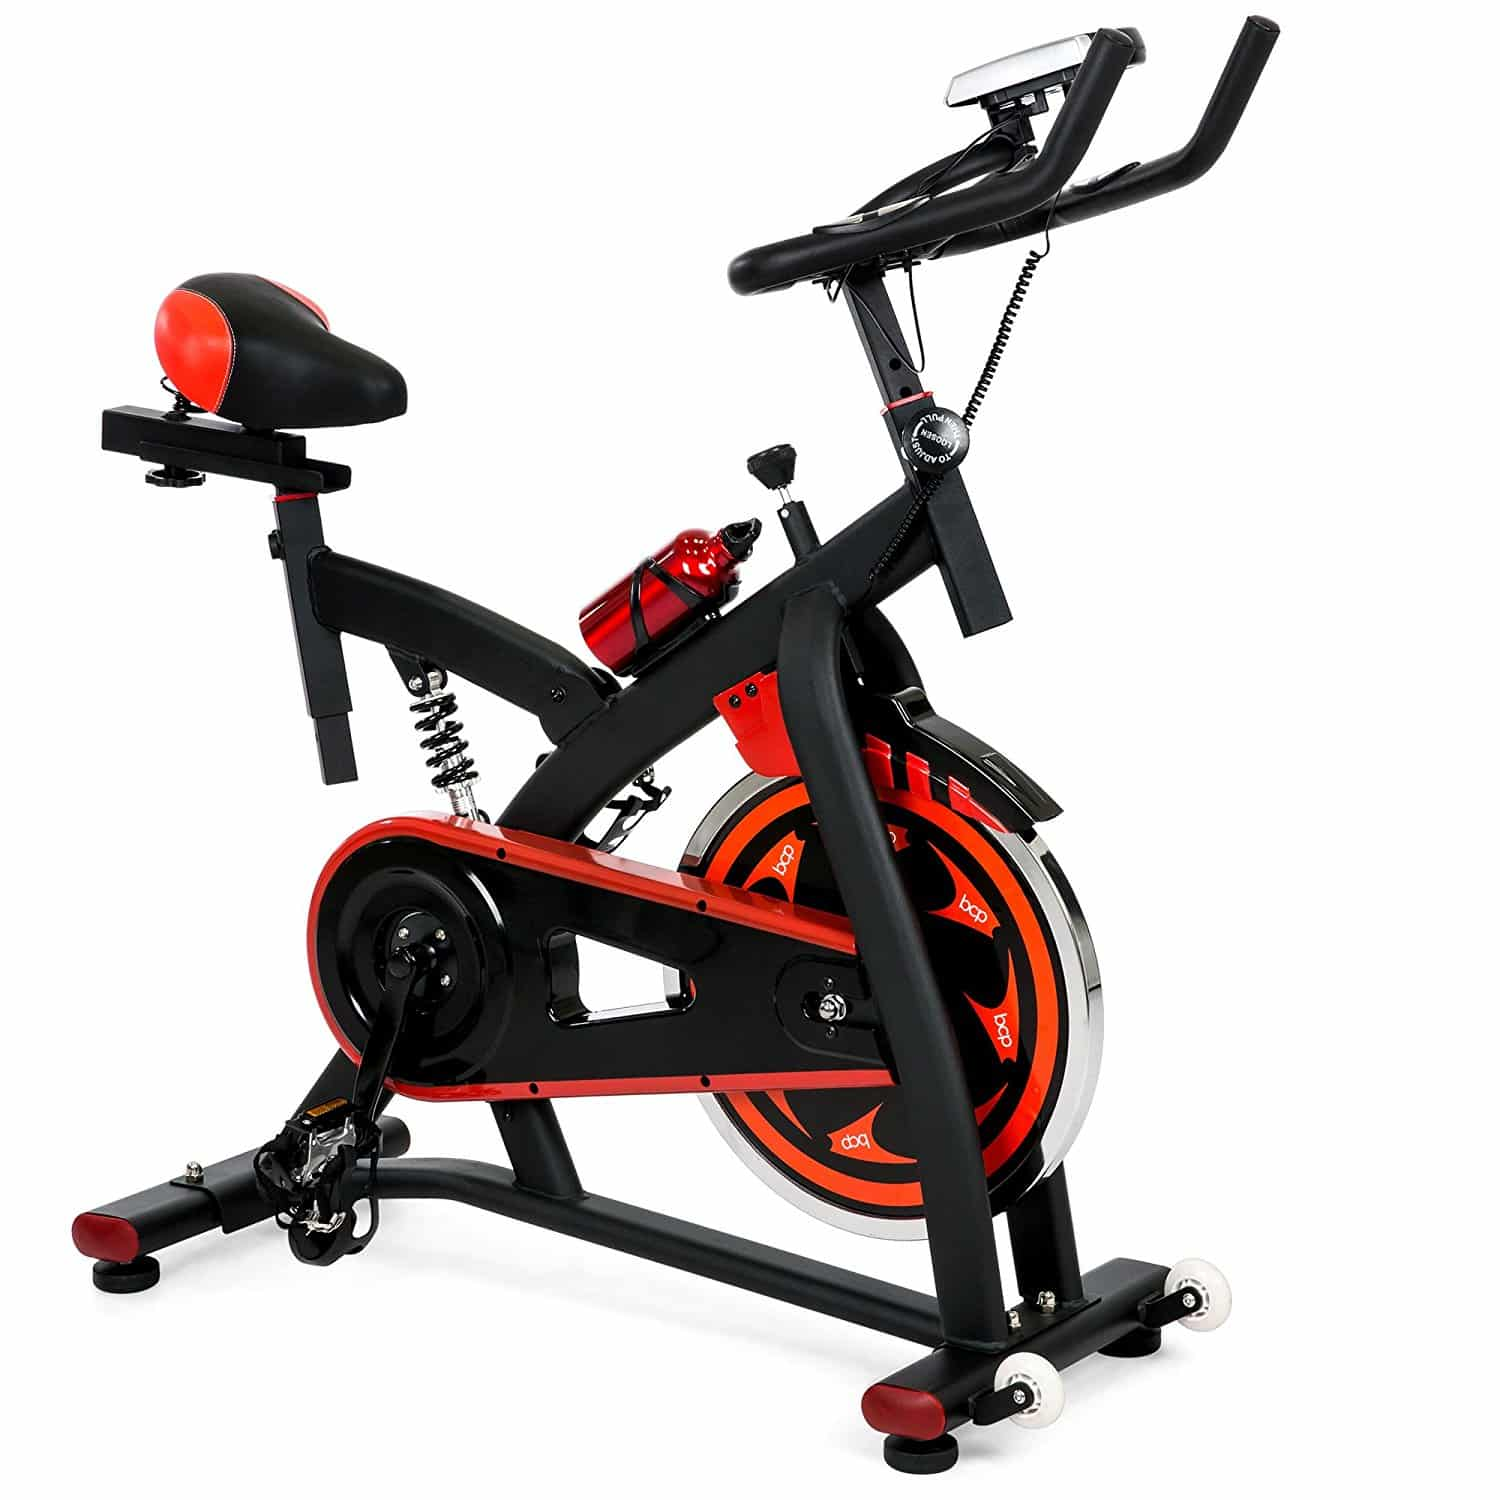 Top 10 Best Exercise Bikes in 2020 Reviews & Buyer's Guide